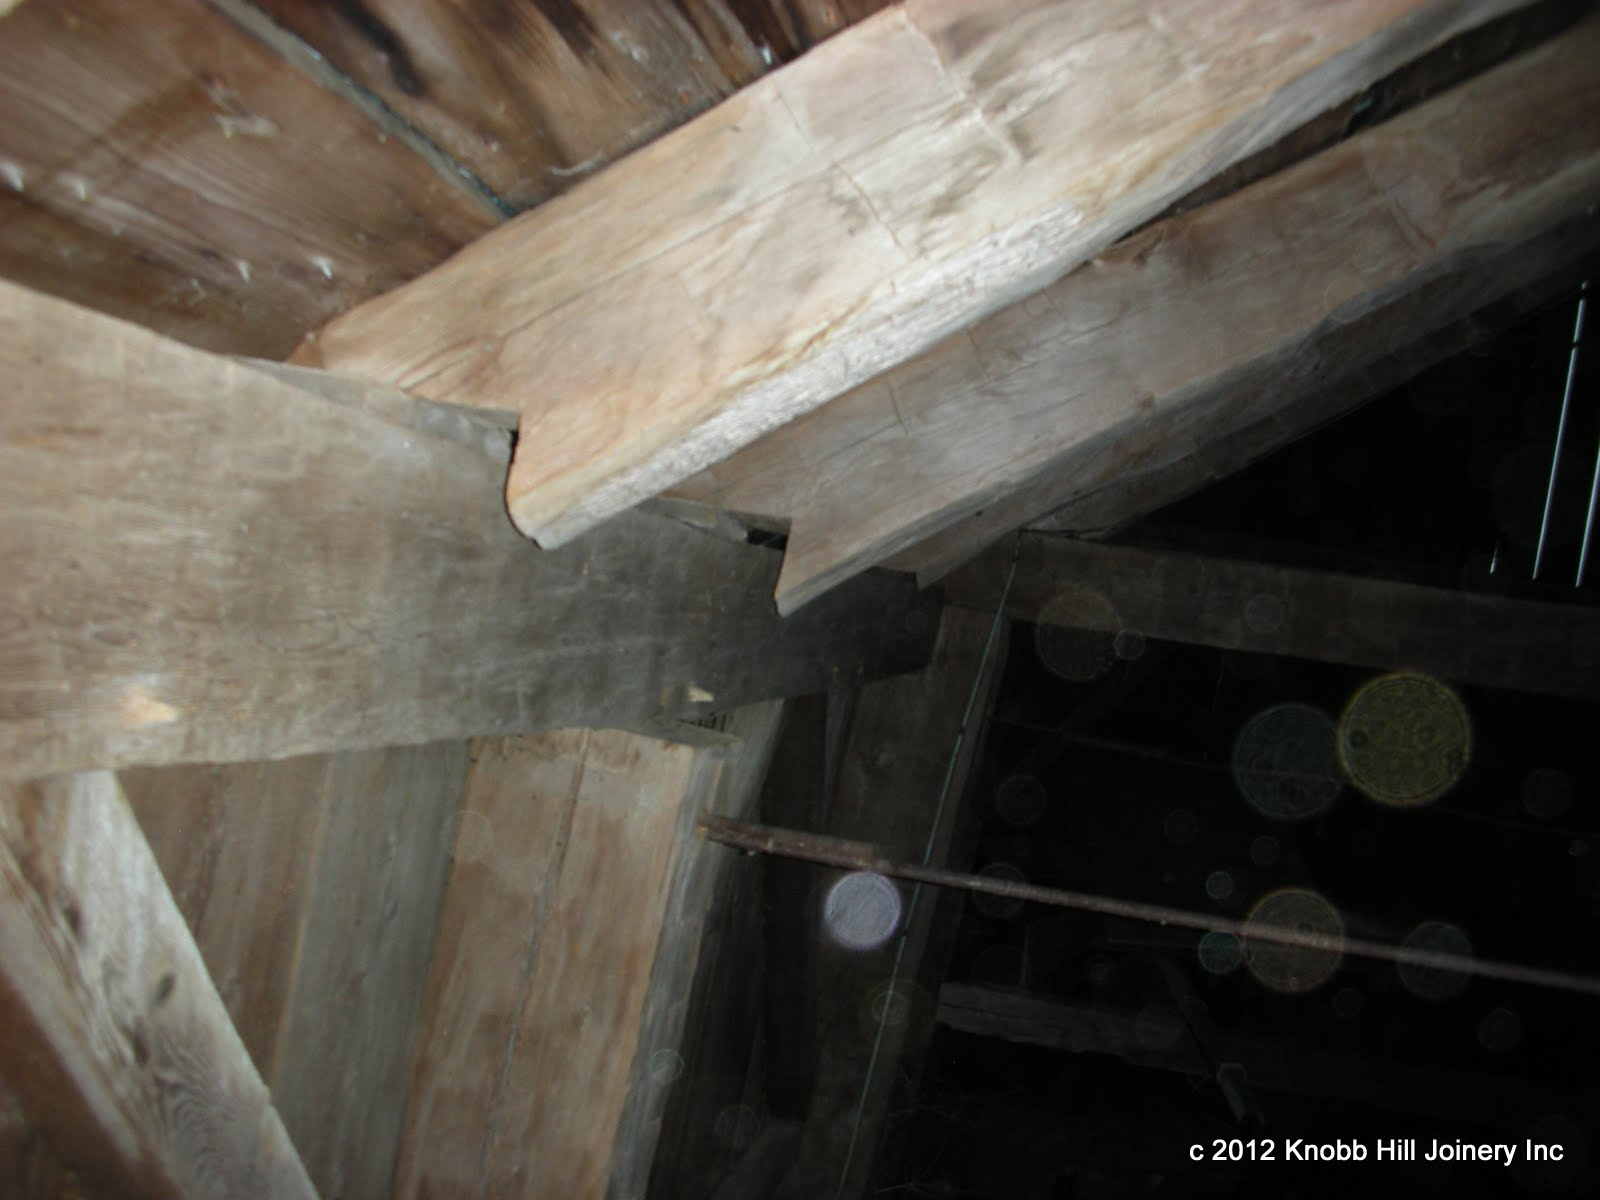 When we had first visited the barn, we thought that the gaps between the rafters and the plates were due to the spreading of the barn.  As it turned out, the original cutting of the rafters and tie beams had not taken into account the two inch cantilever of each plate for the boarding groove.